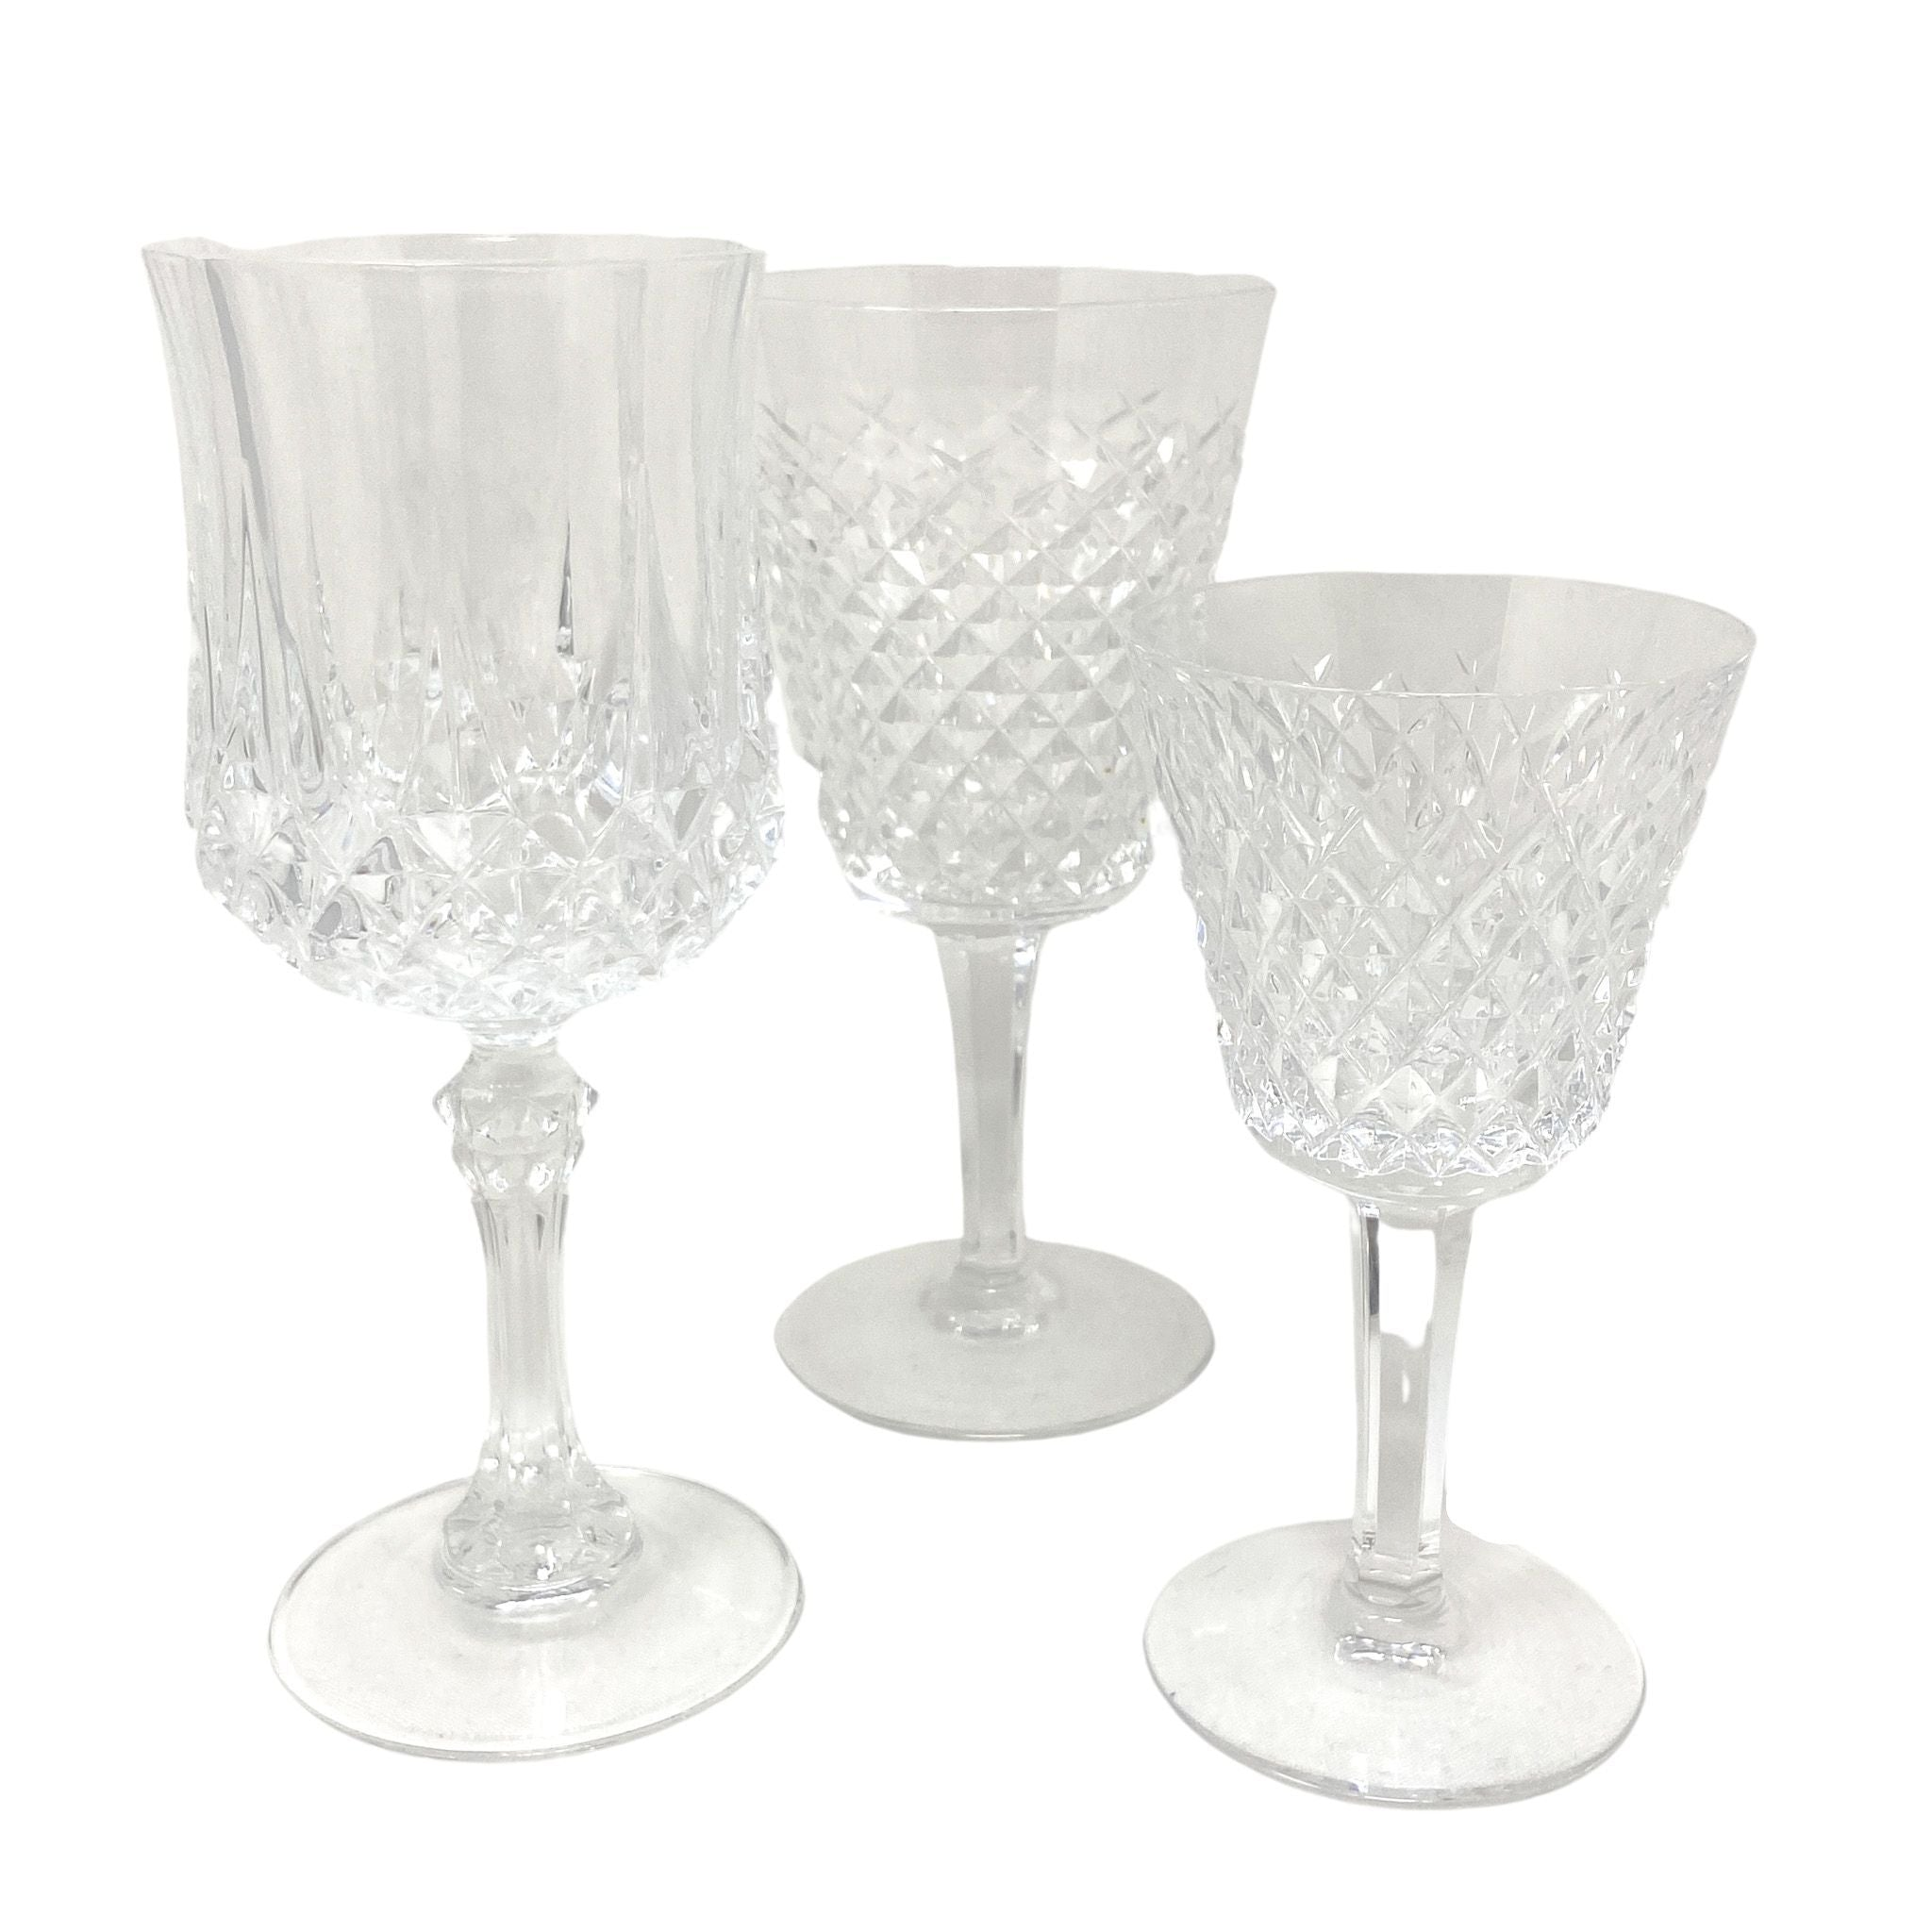 Vintage Waterford Faceted Crystal Goblets in 3 heights | The Brooklyn Teacup